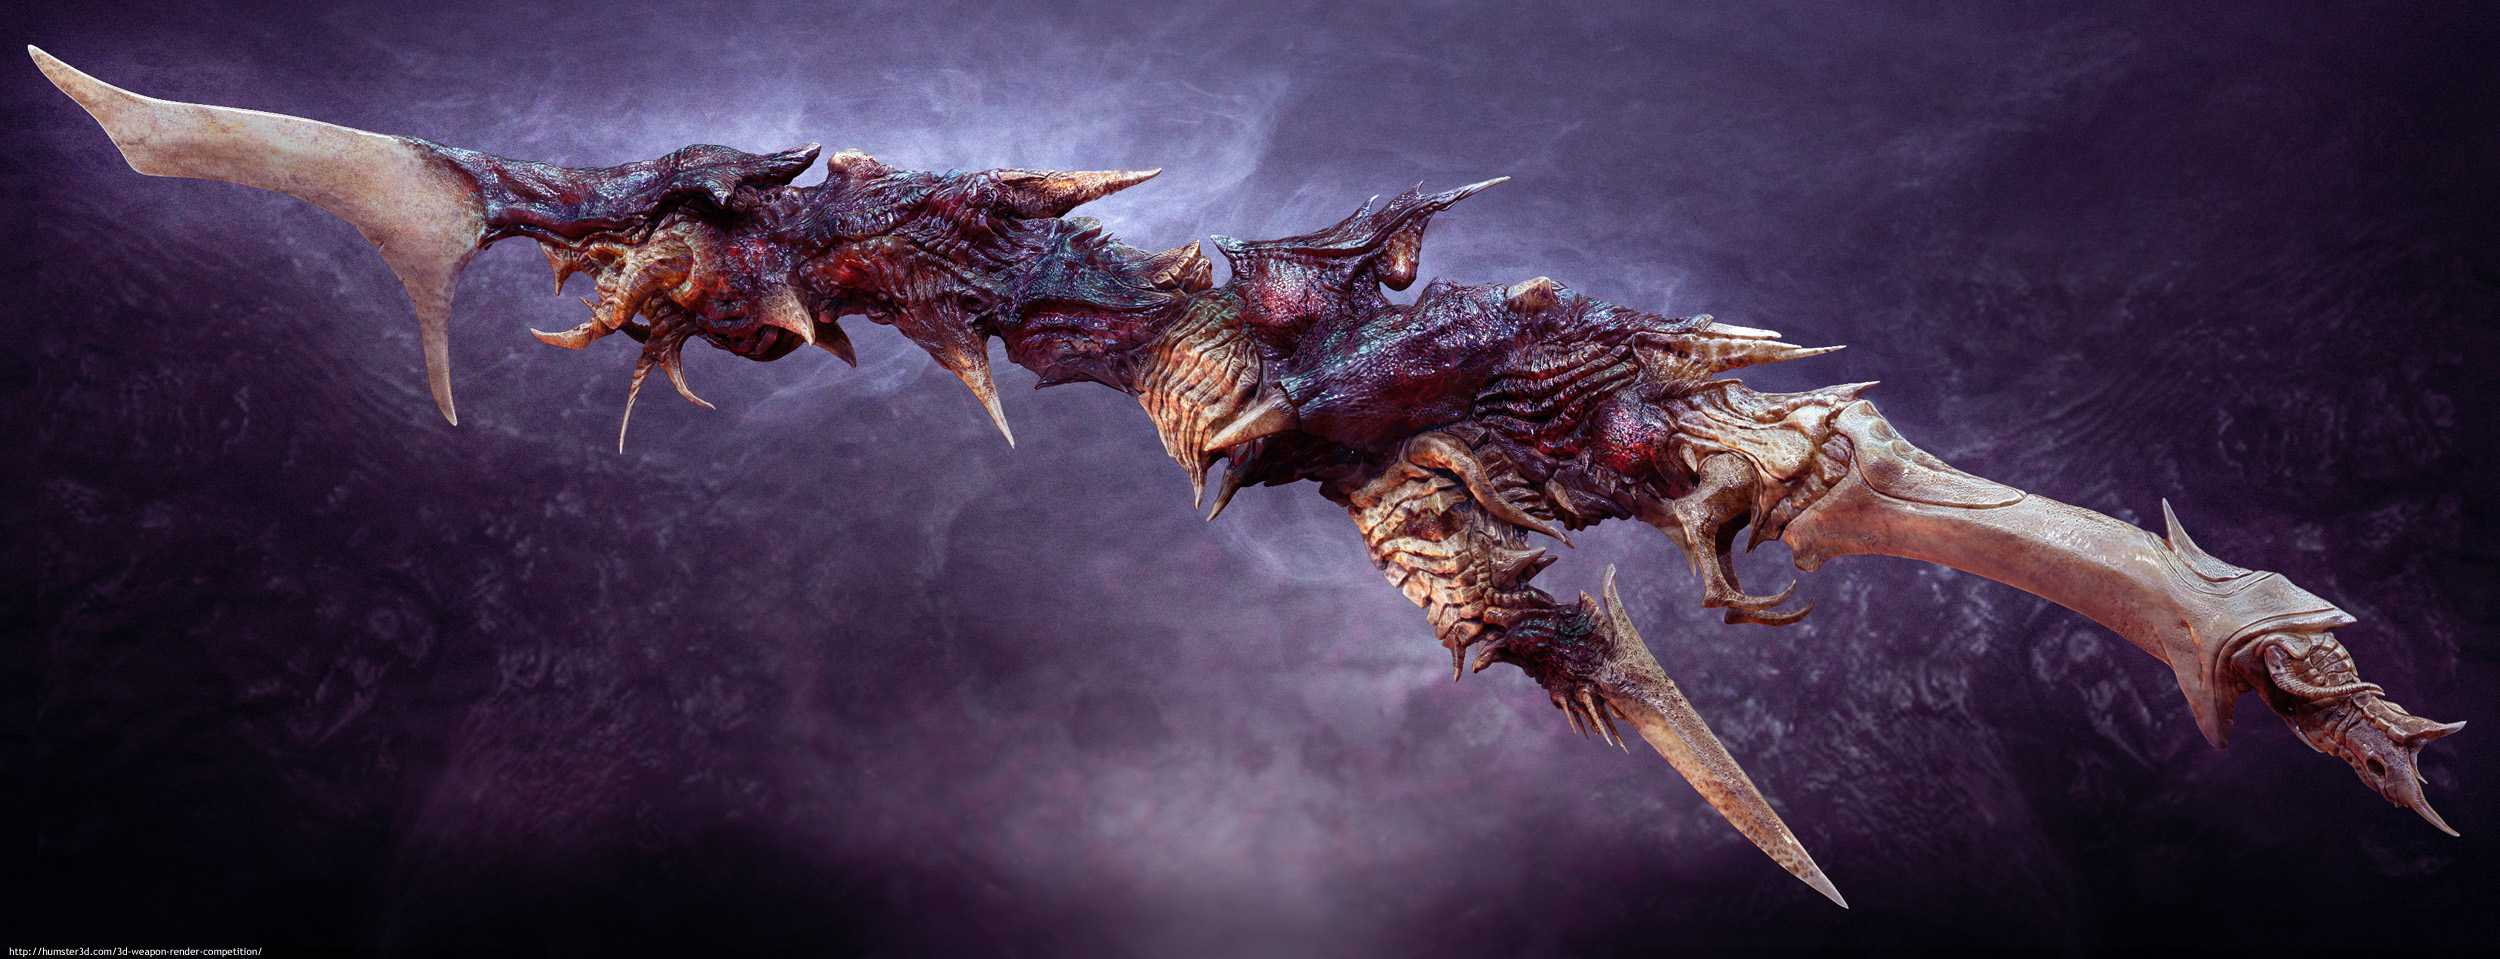 Nightmare Sword 3d art